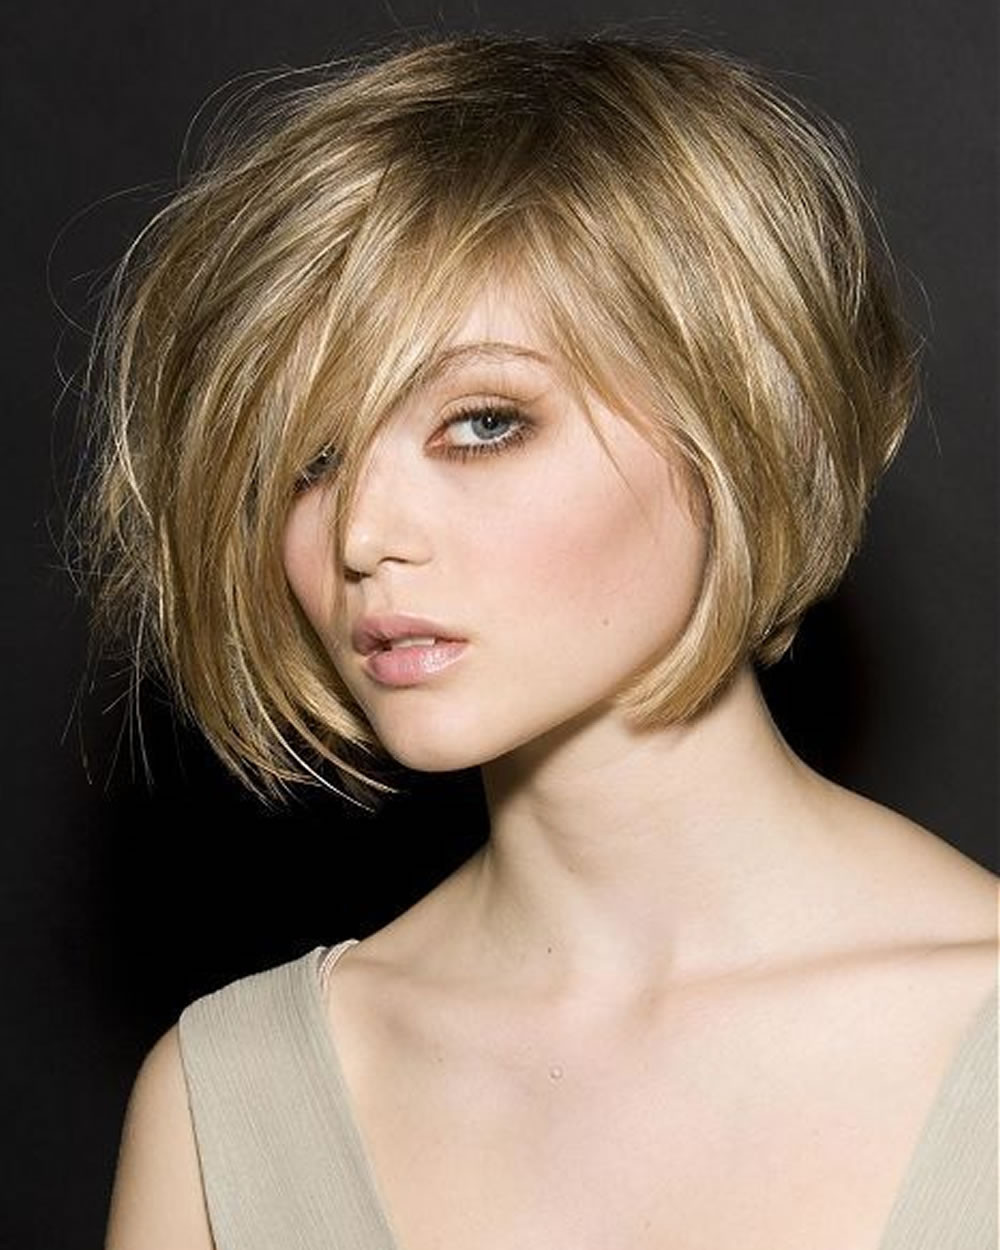 Bobbed Haircuts 2019  60 Unique Pixie & Bob Haircuts Hairstyles for Short Hair